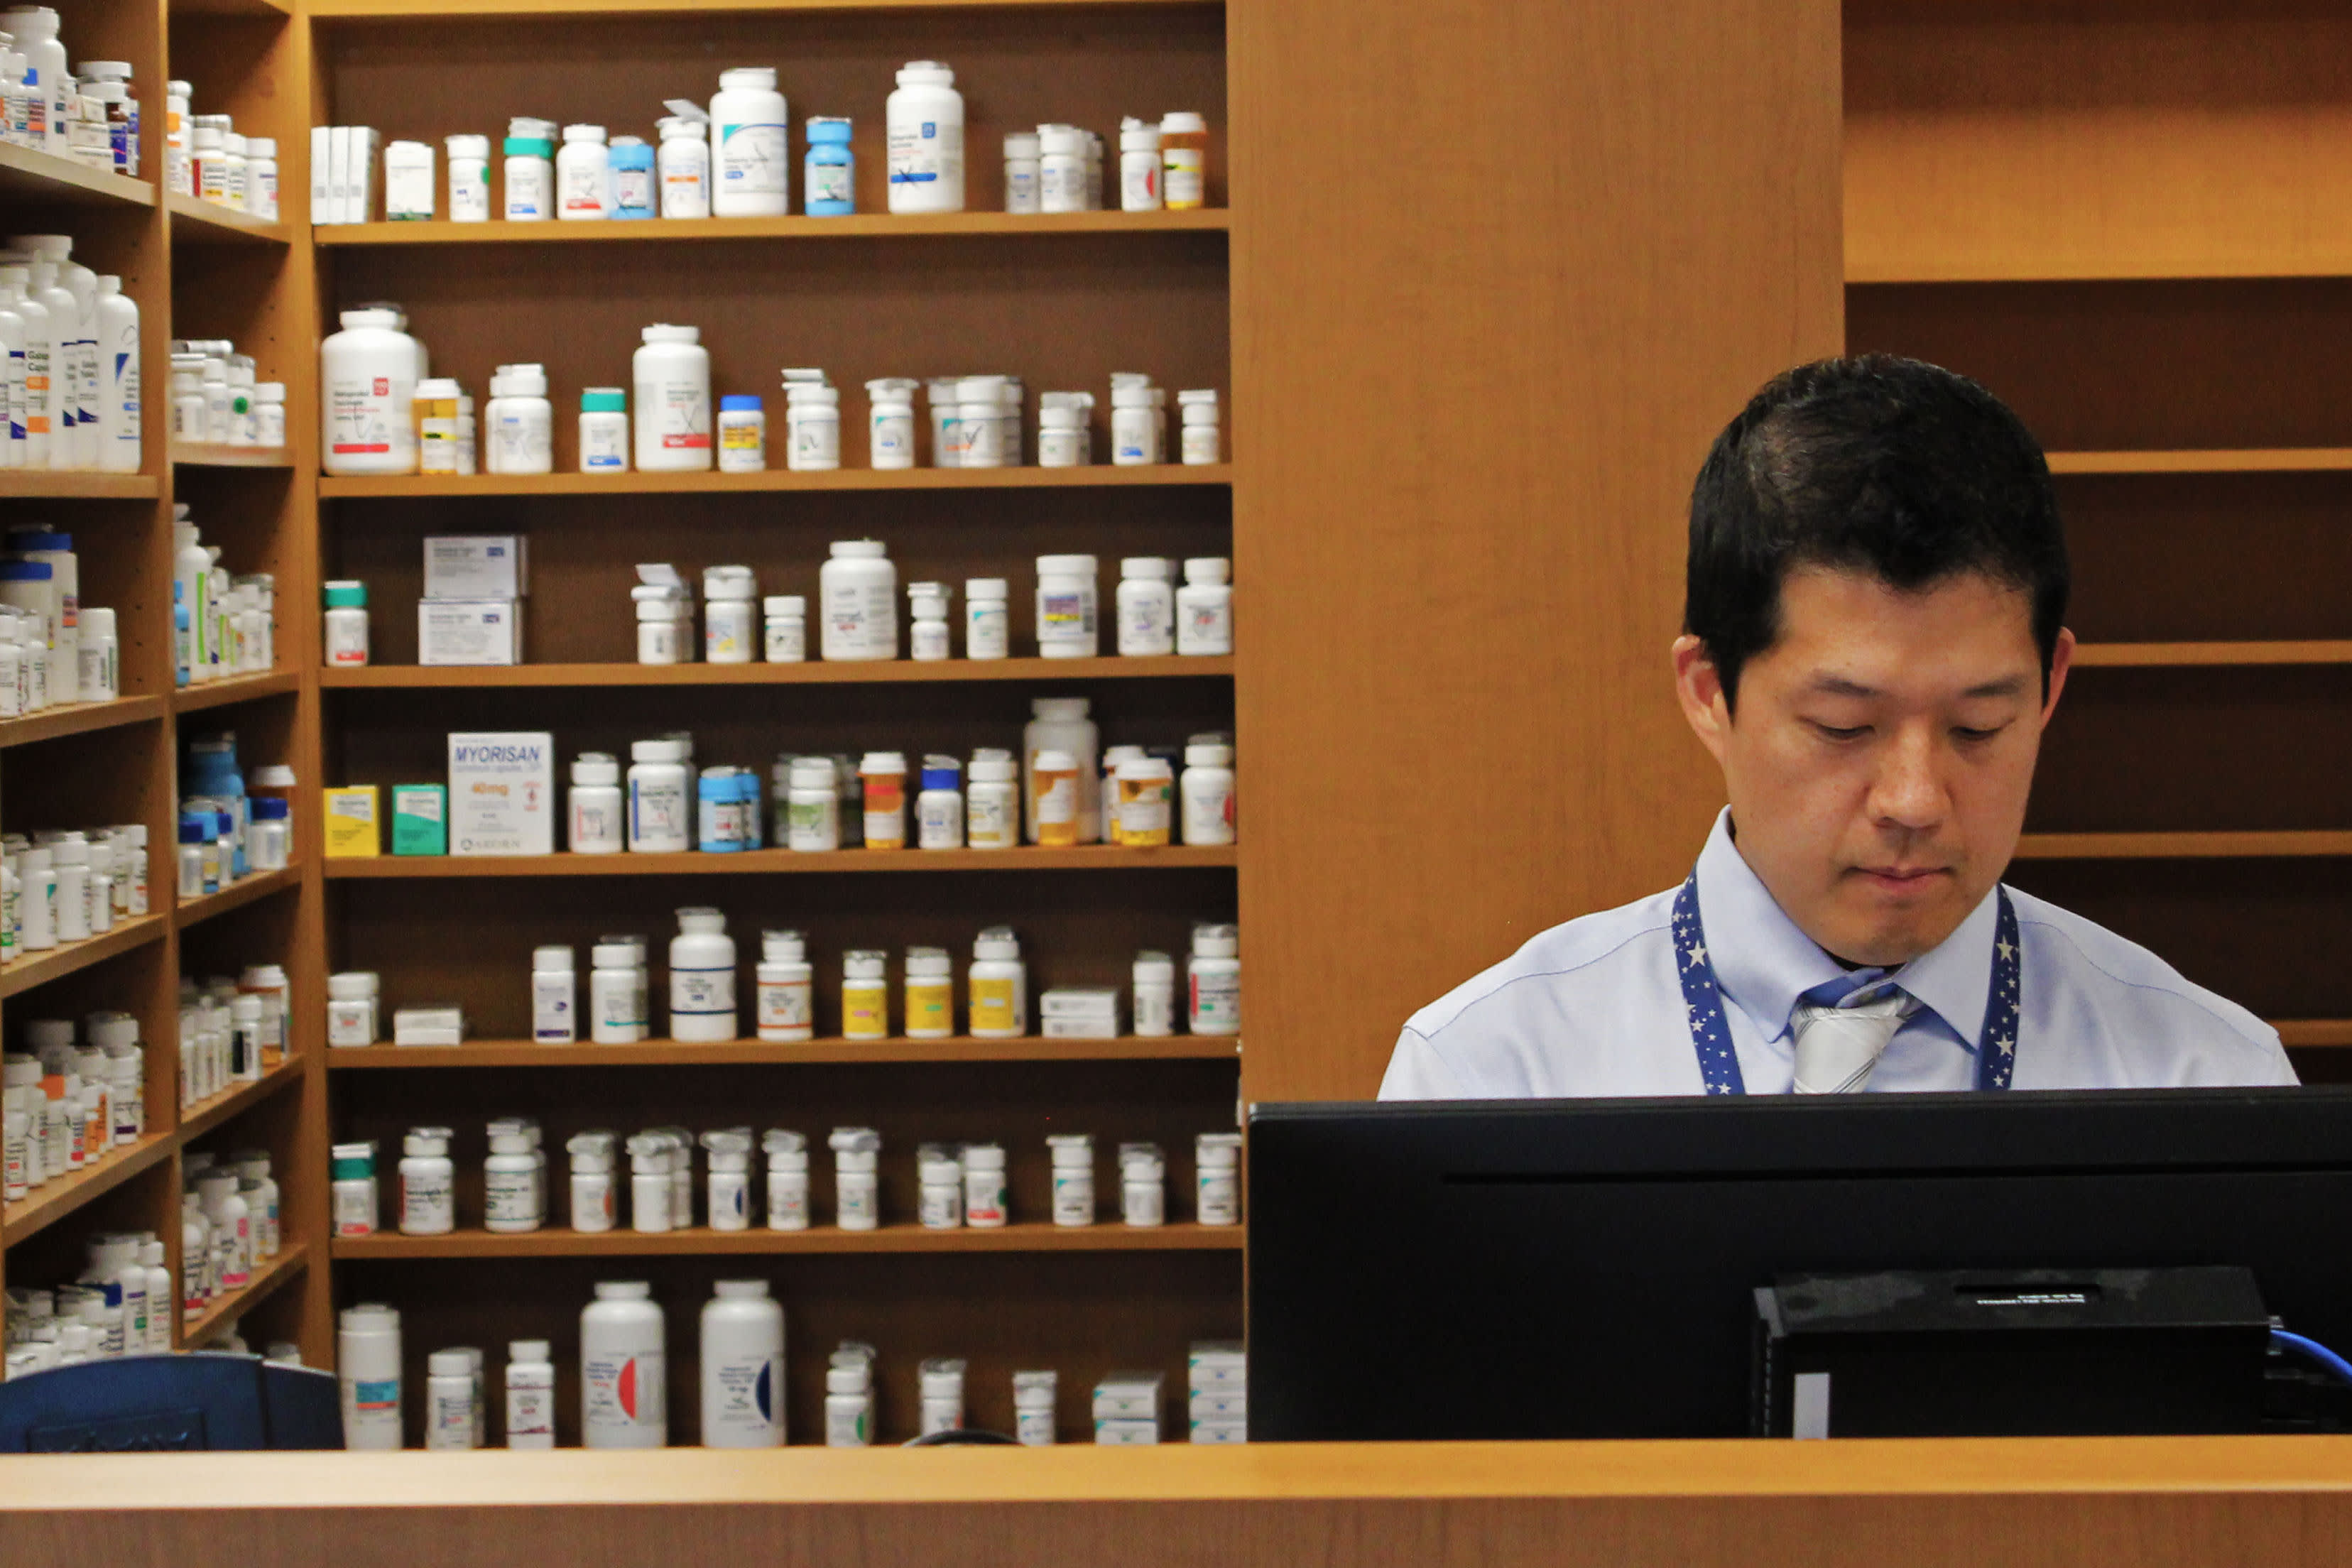 2019 Pharmacy Back Counter